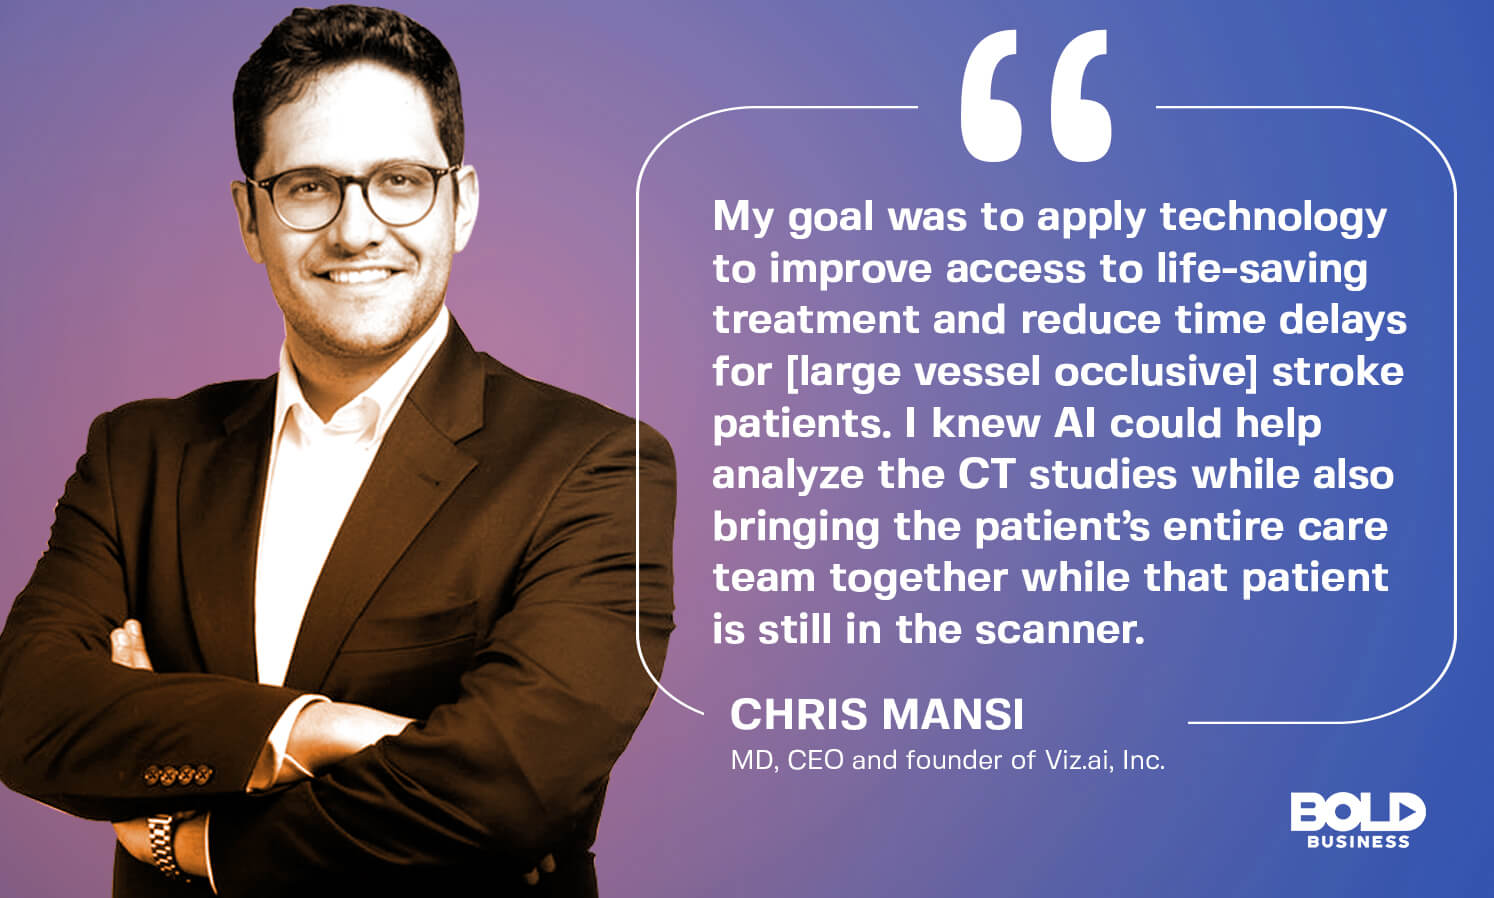 Chris Mansi discusses Blending AI and neuroscience can save the lives of stroke victims - thereby making it essential.